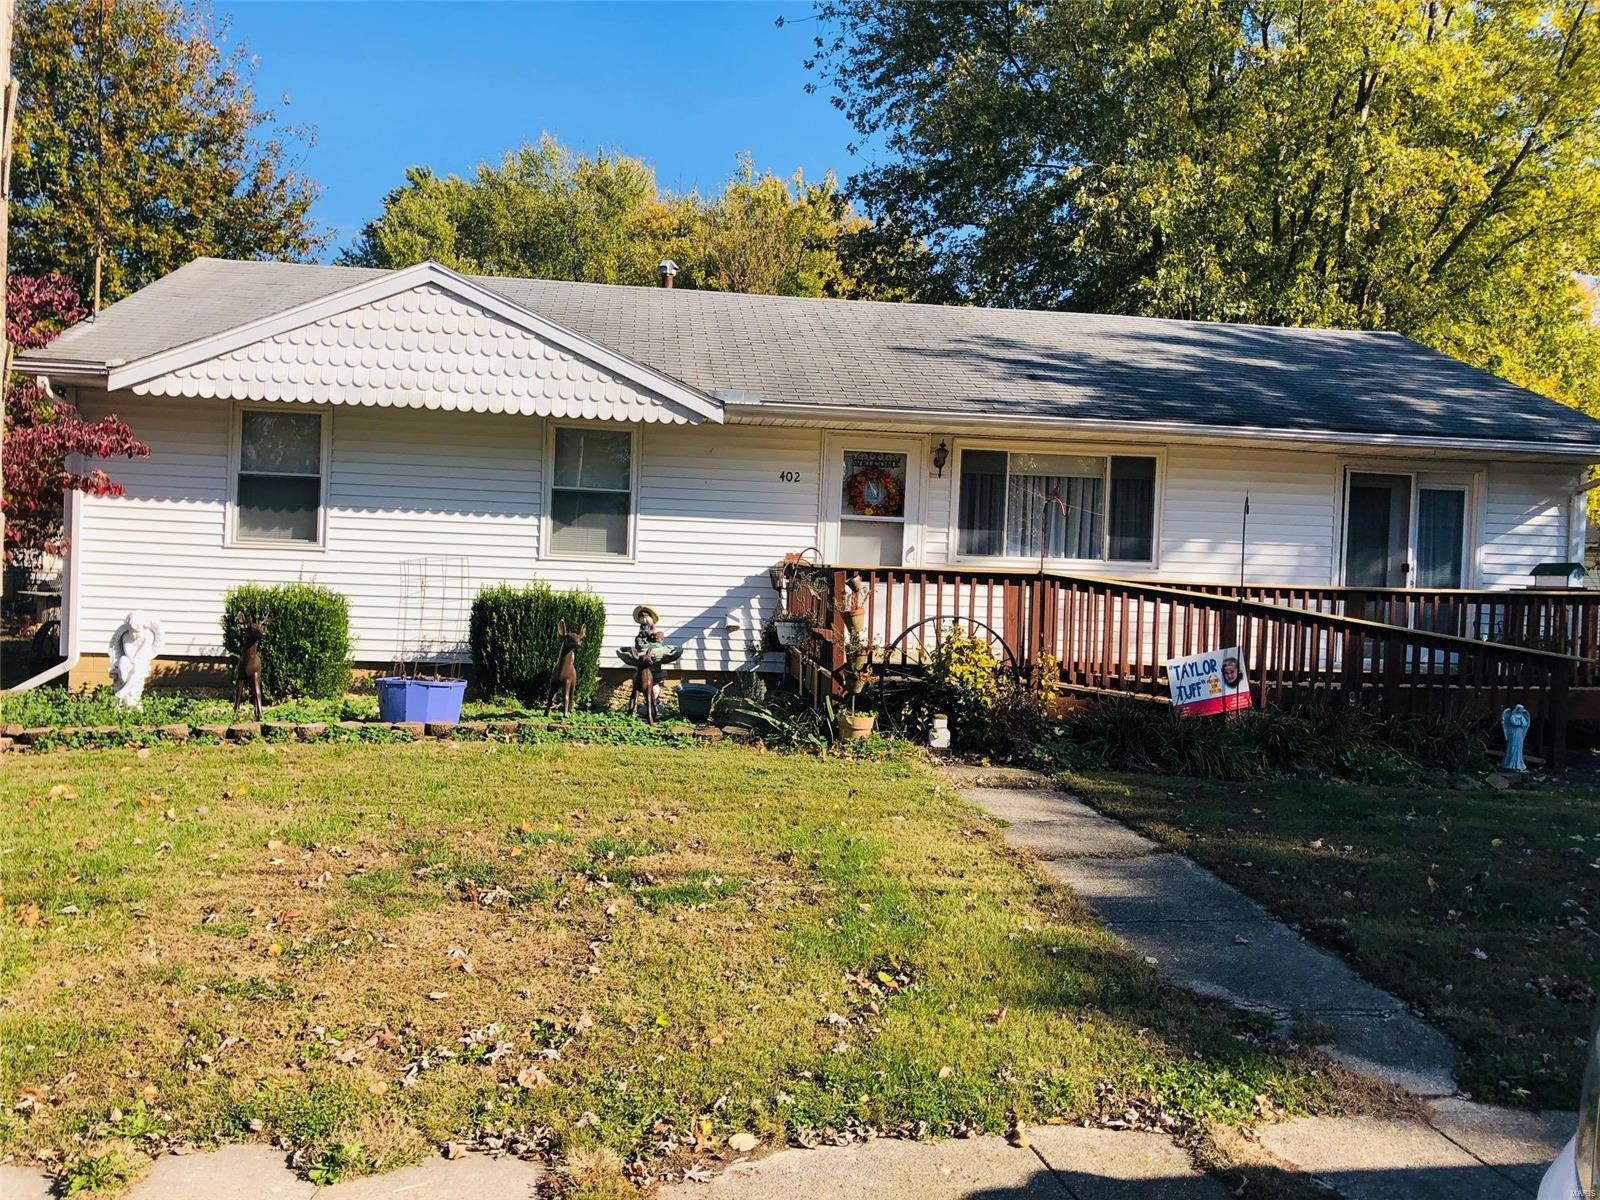 402 WOOD N Property Photo - Mulberry Grove, IL real estate listing